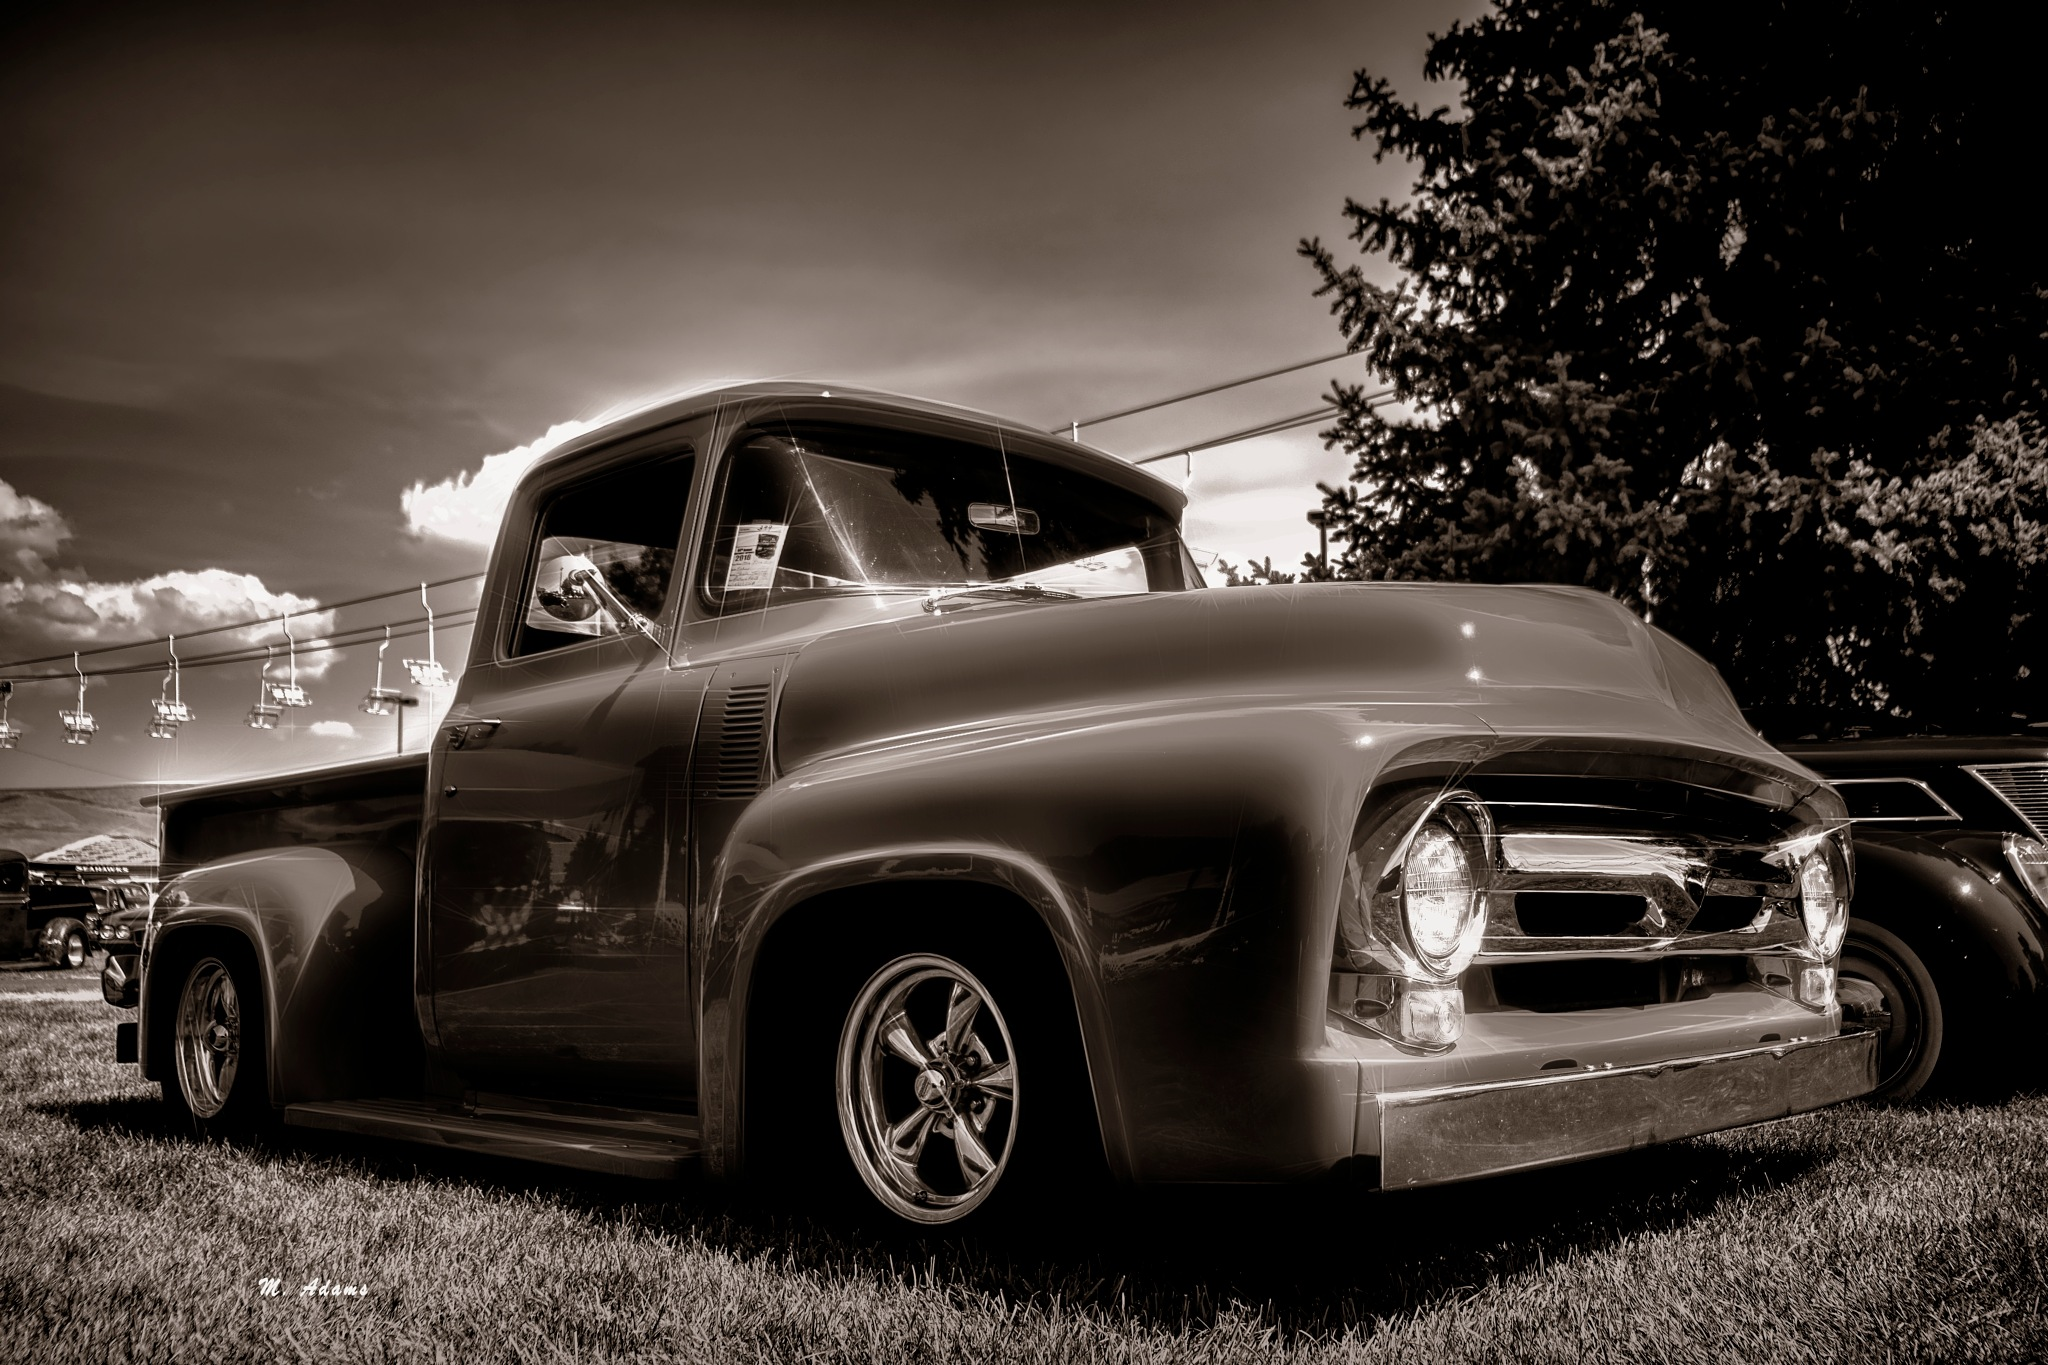 Ford F-100 by Mike Adams